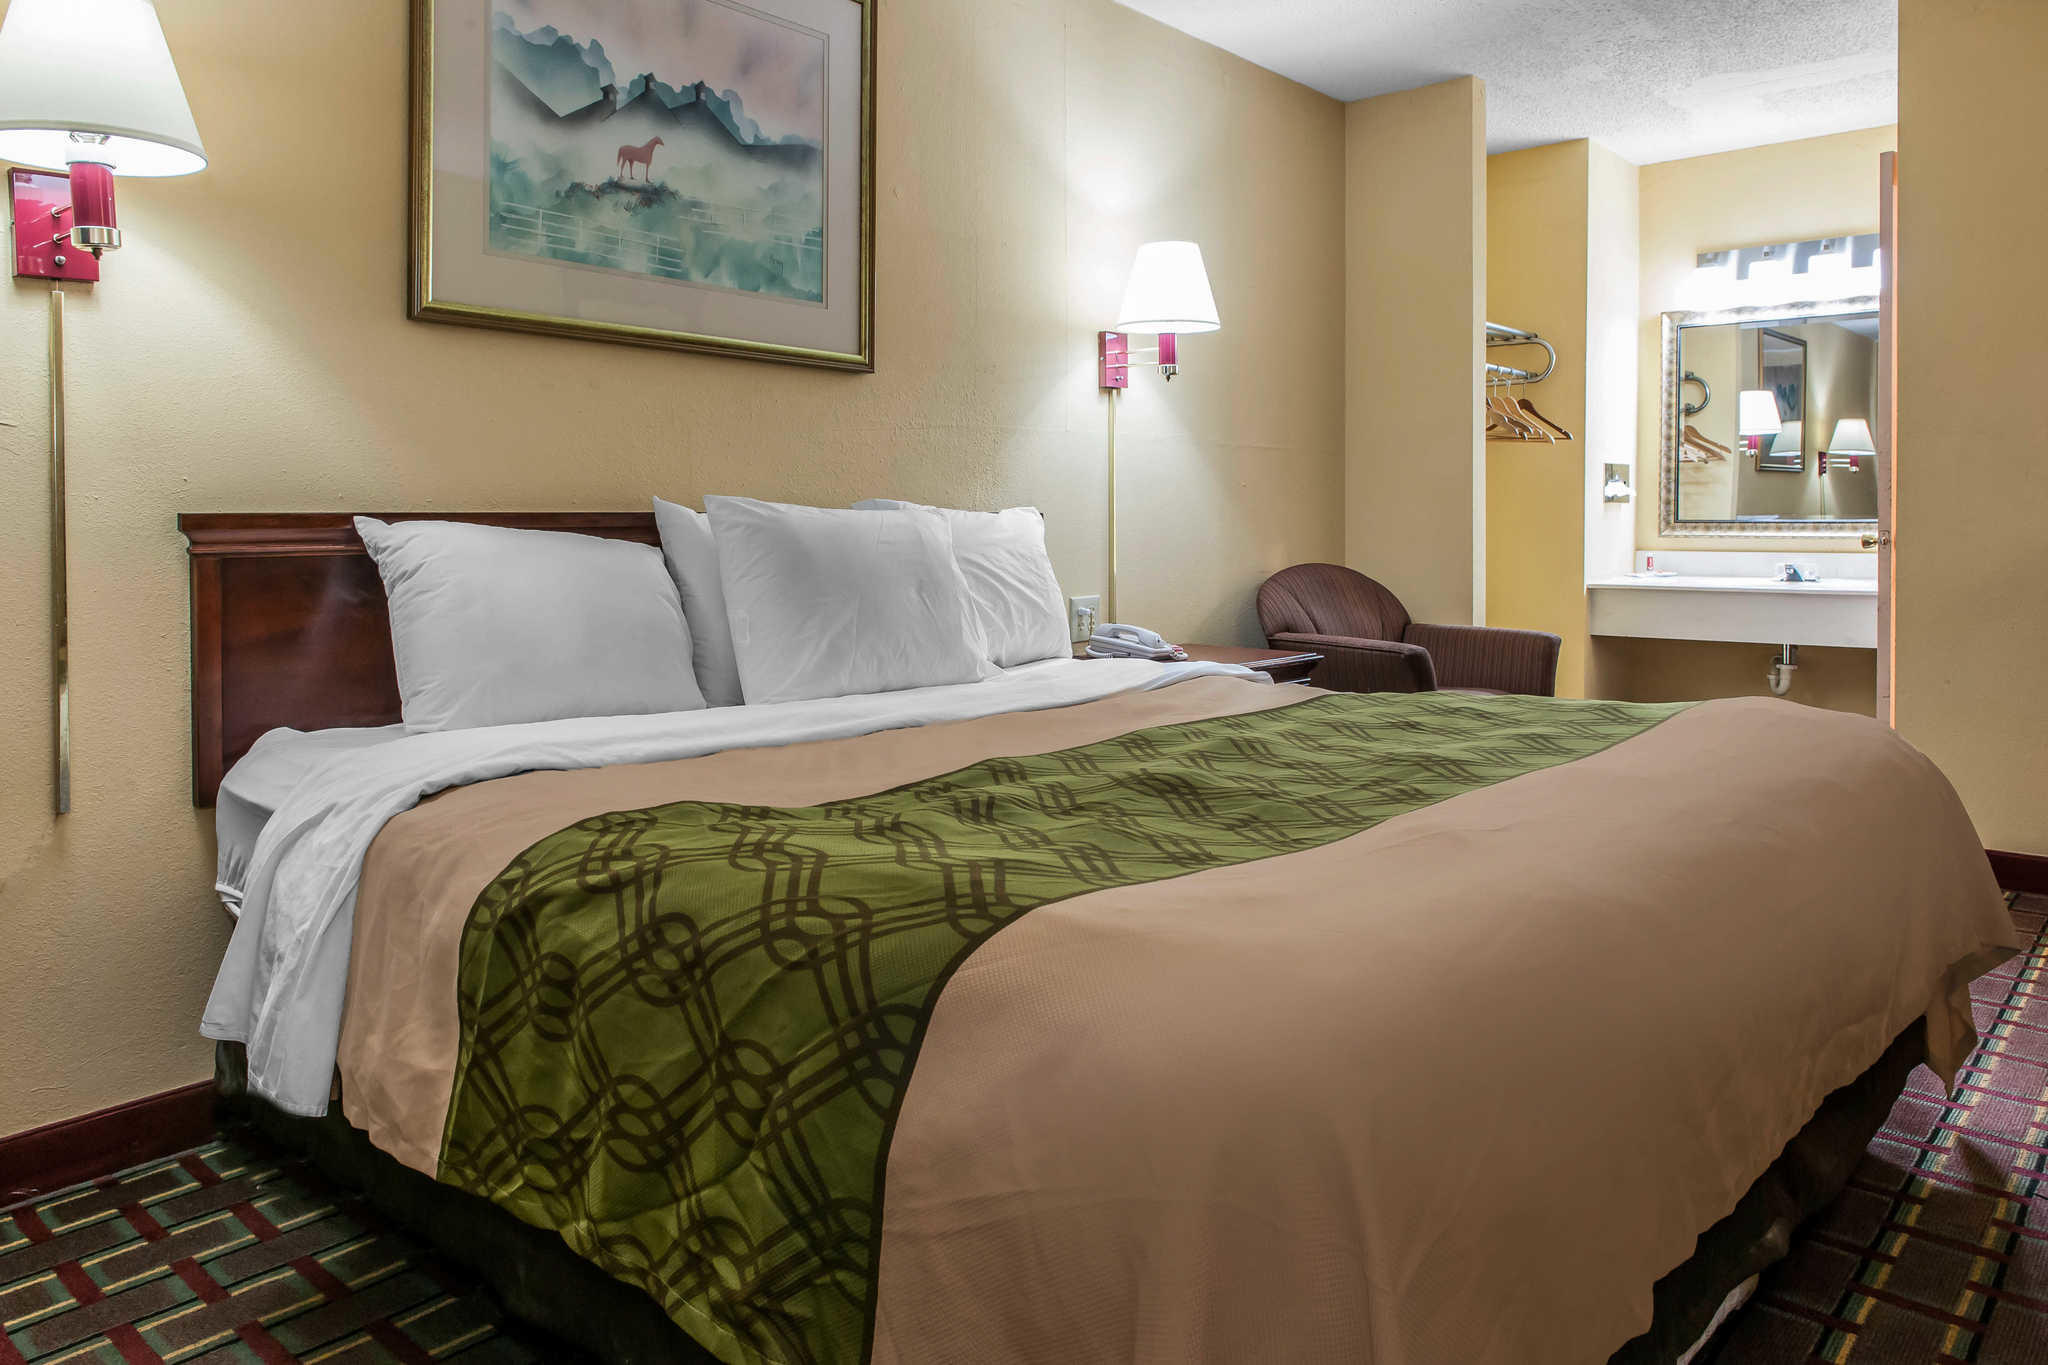 Hotels With Connecting Rooms In Lexington Ky